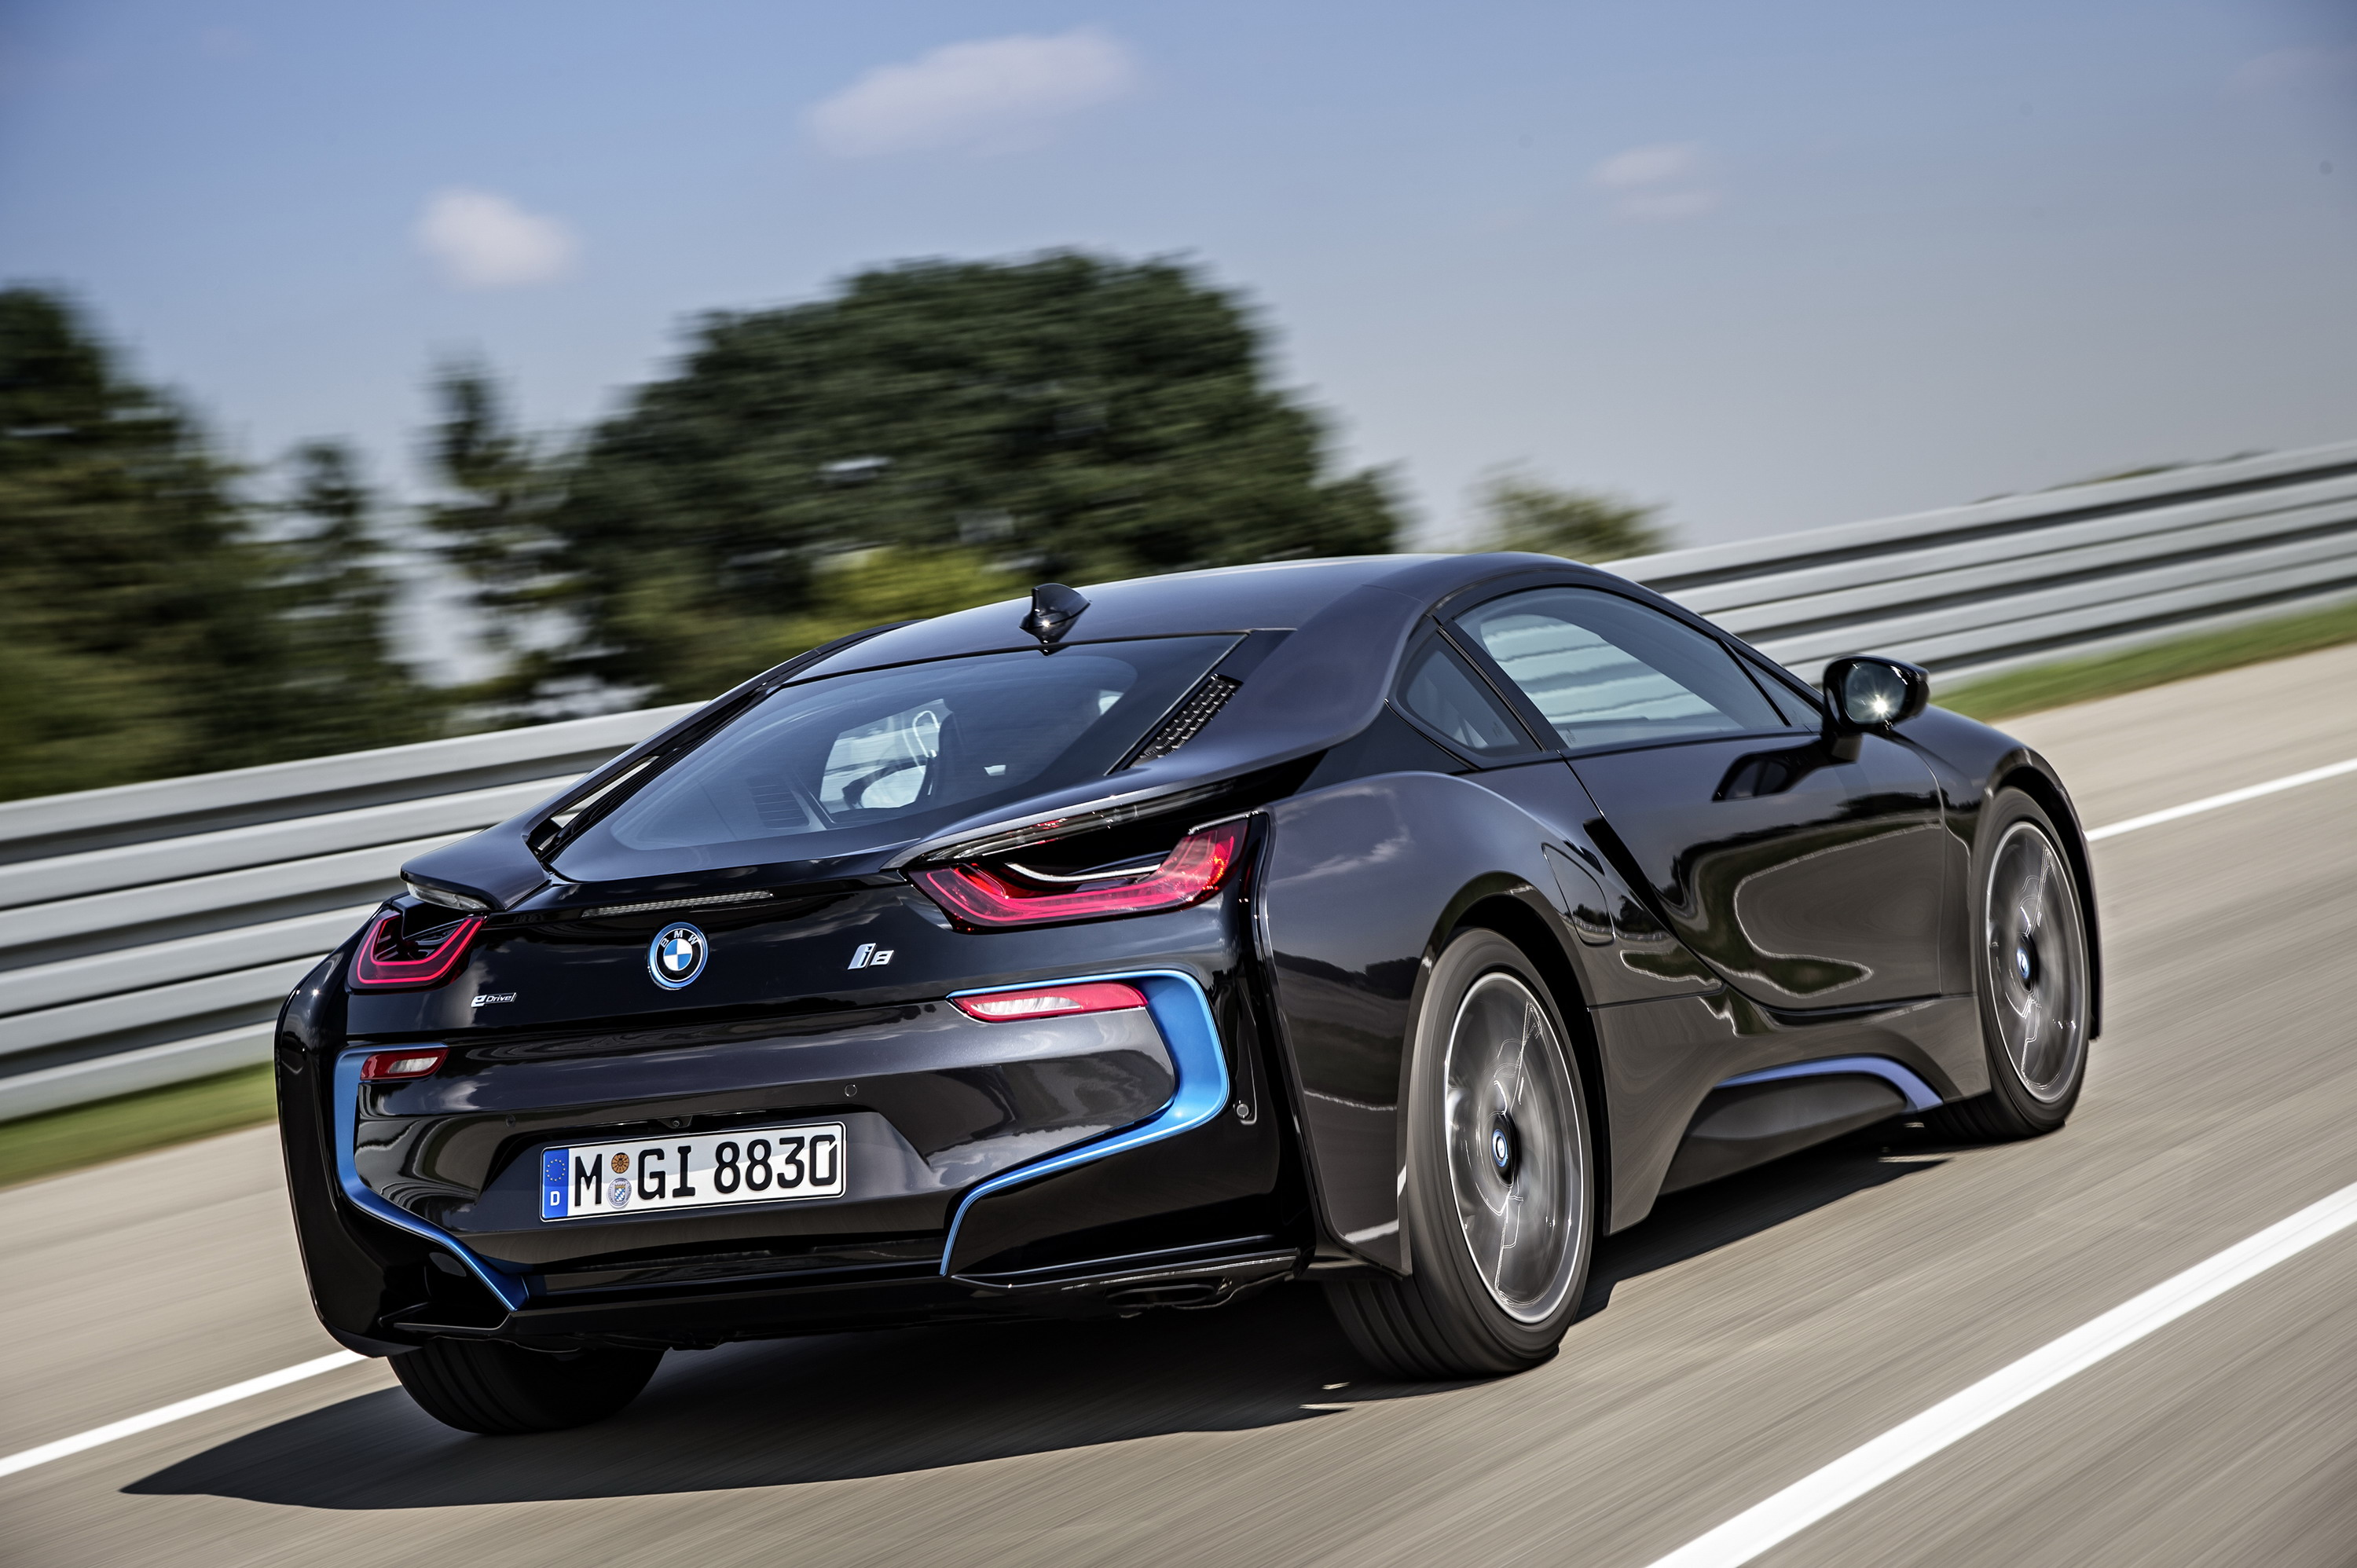 2015 bmw i8 sophisto grey review - top speed